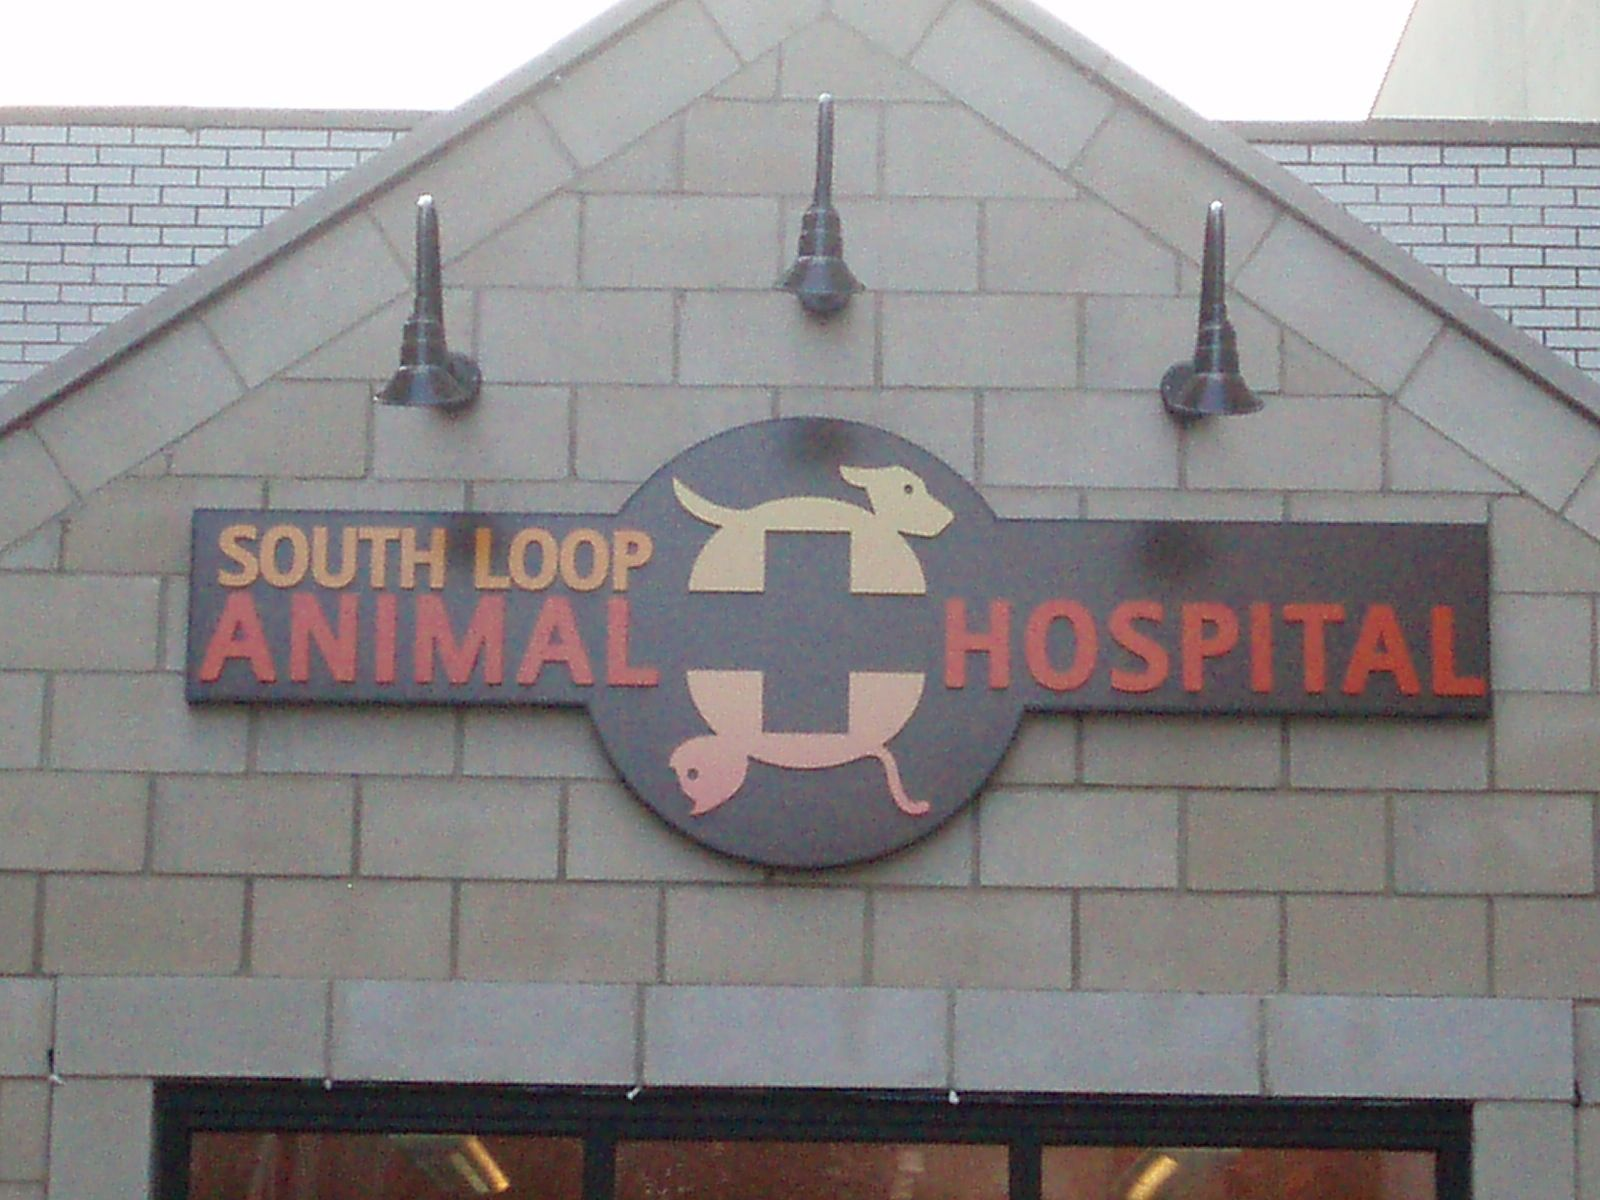 South Loop Animal Hospital, Chicago IL Signs South